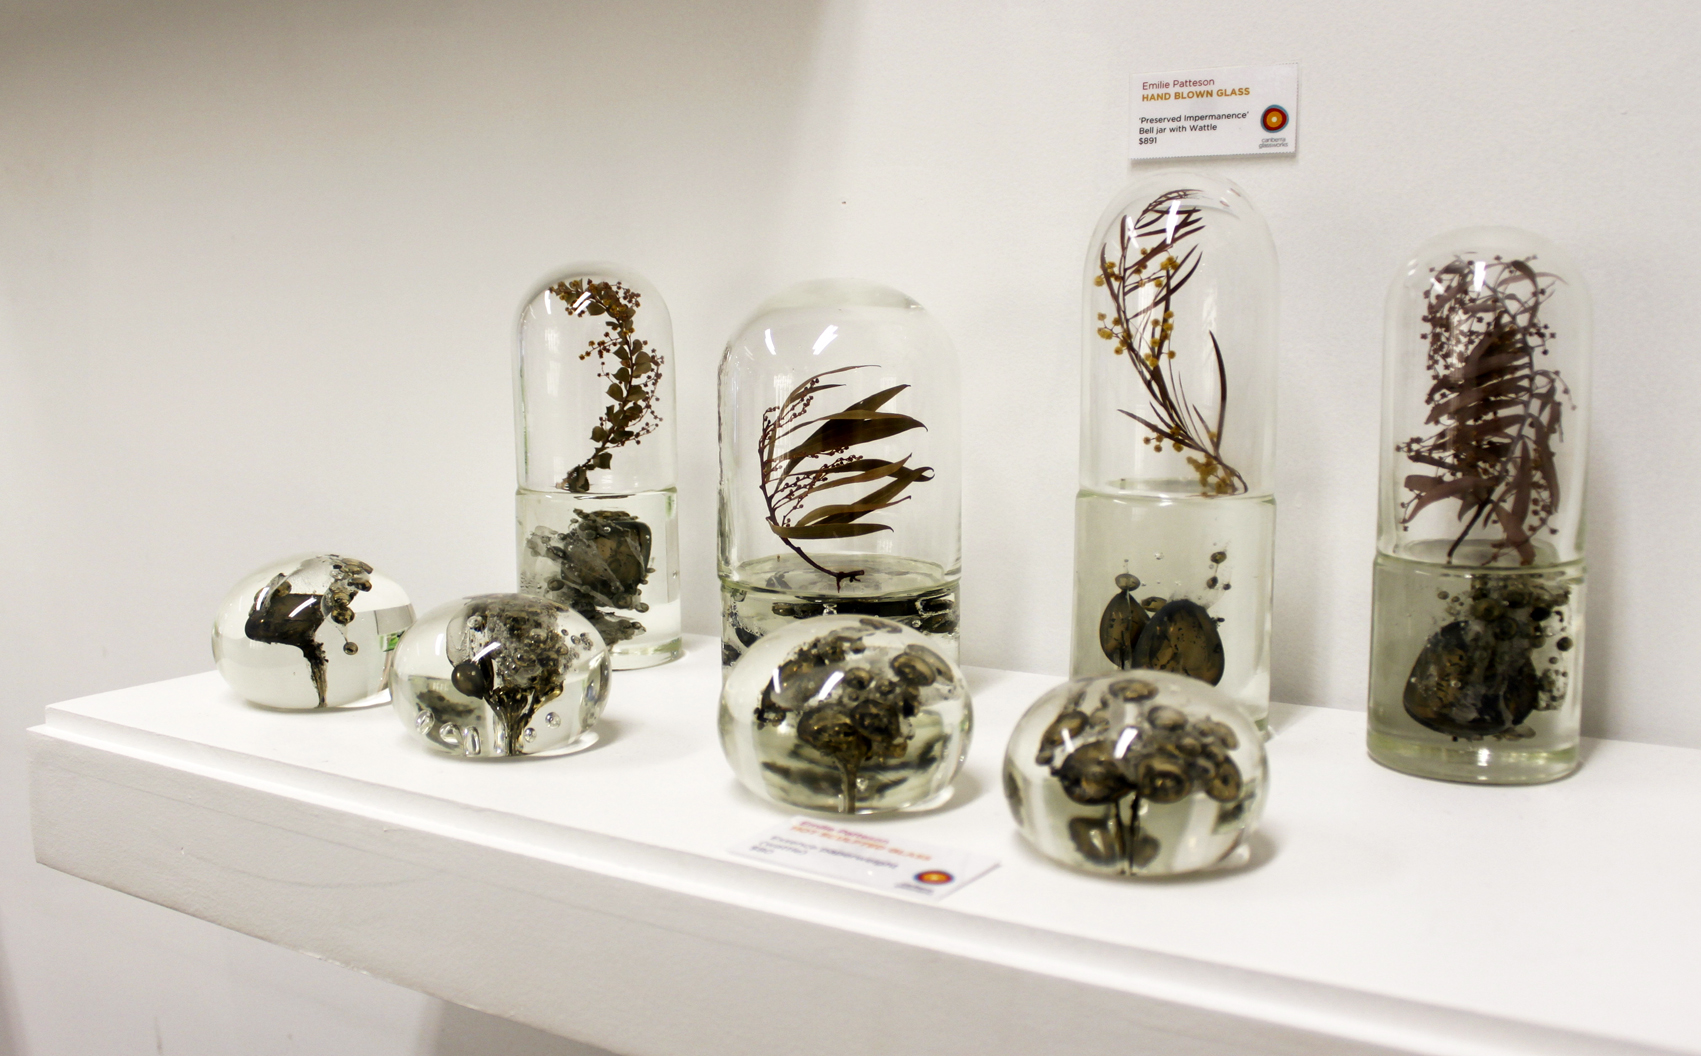 Emilie's work in the foyer of Canberra Glassworks.